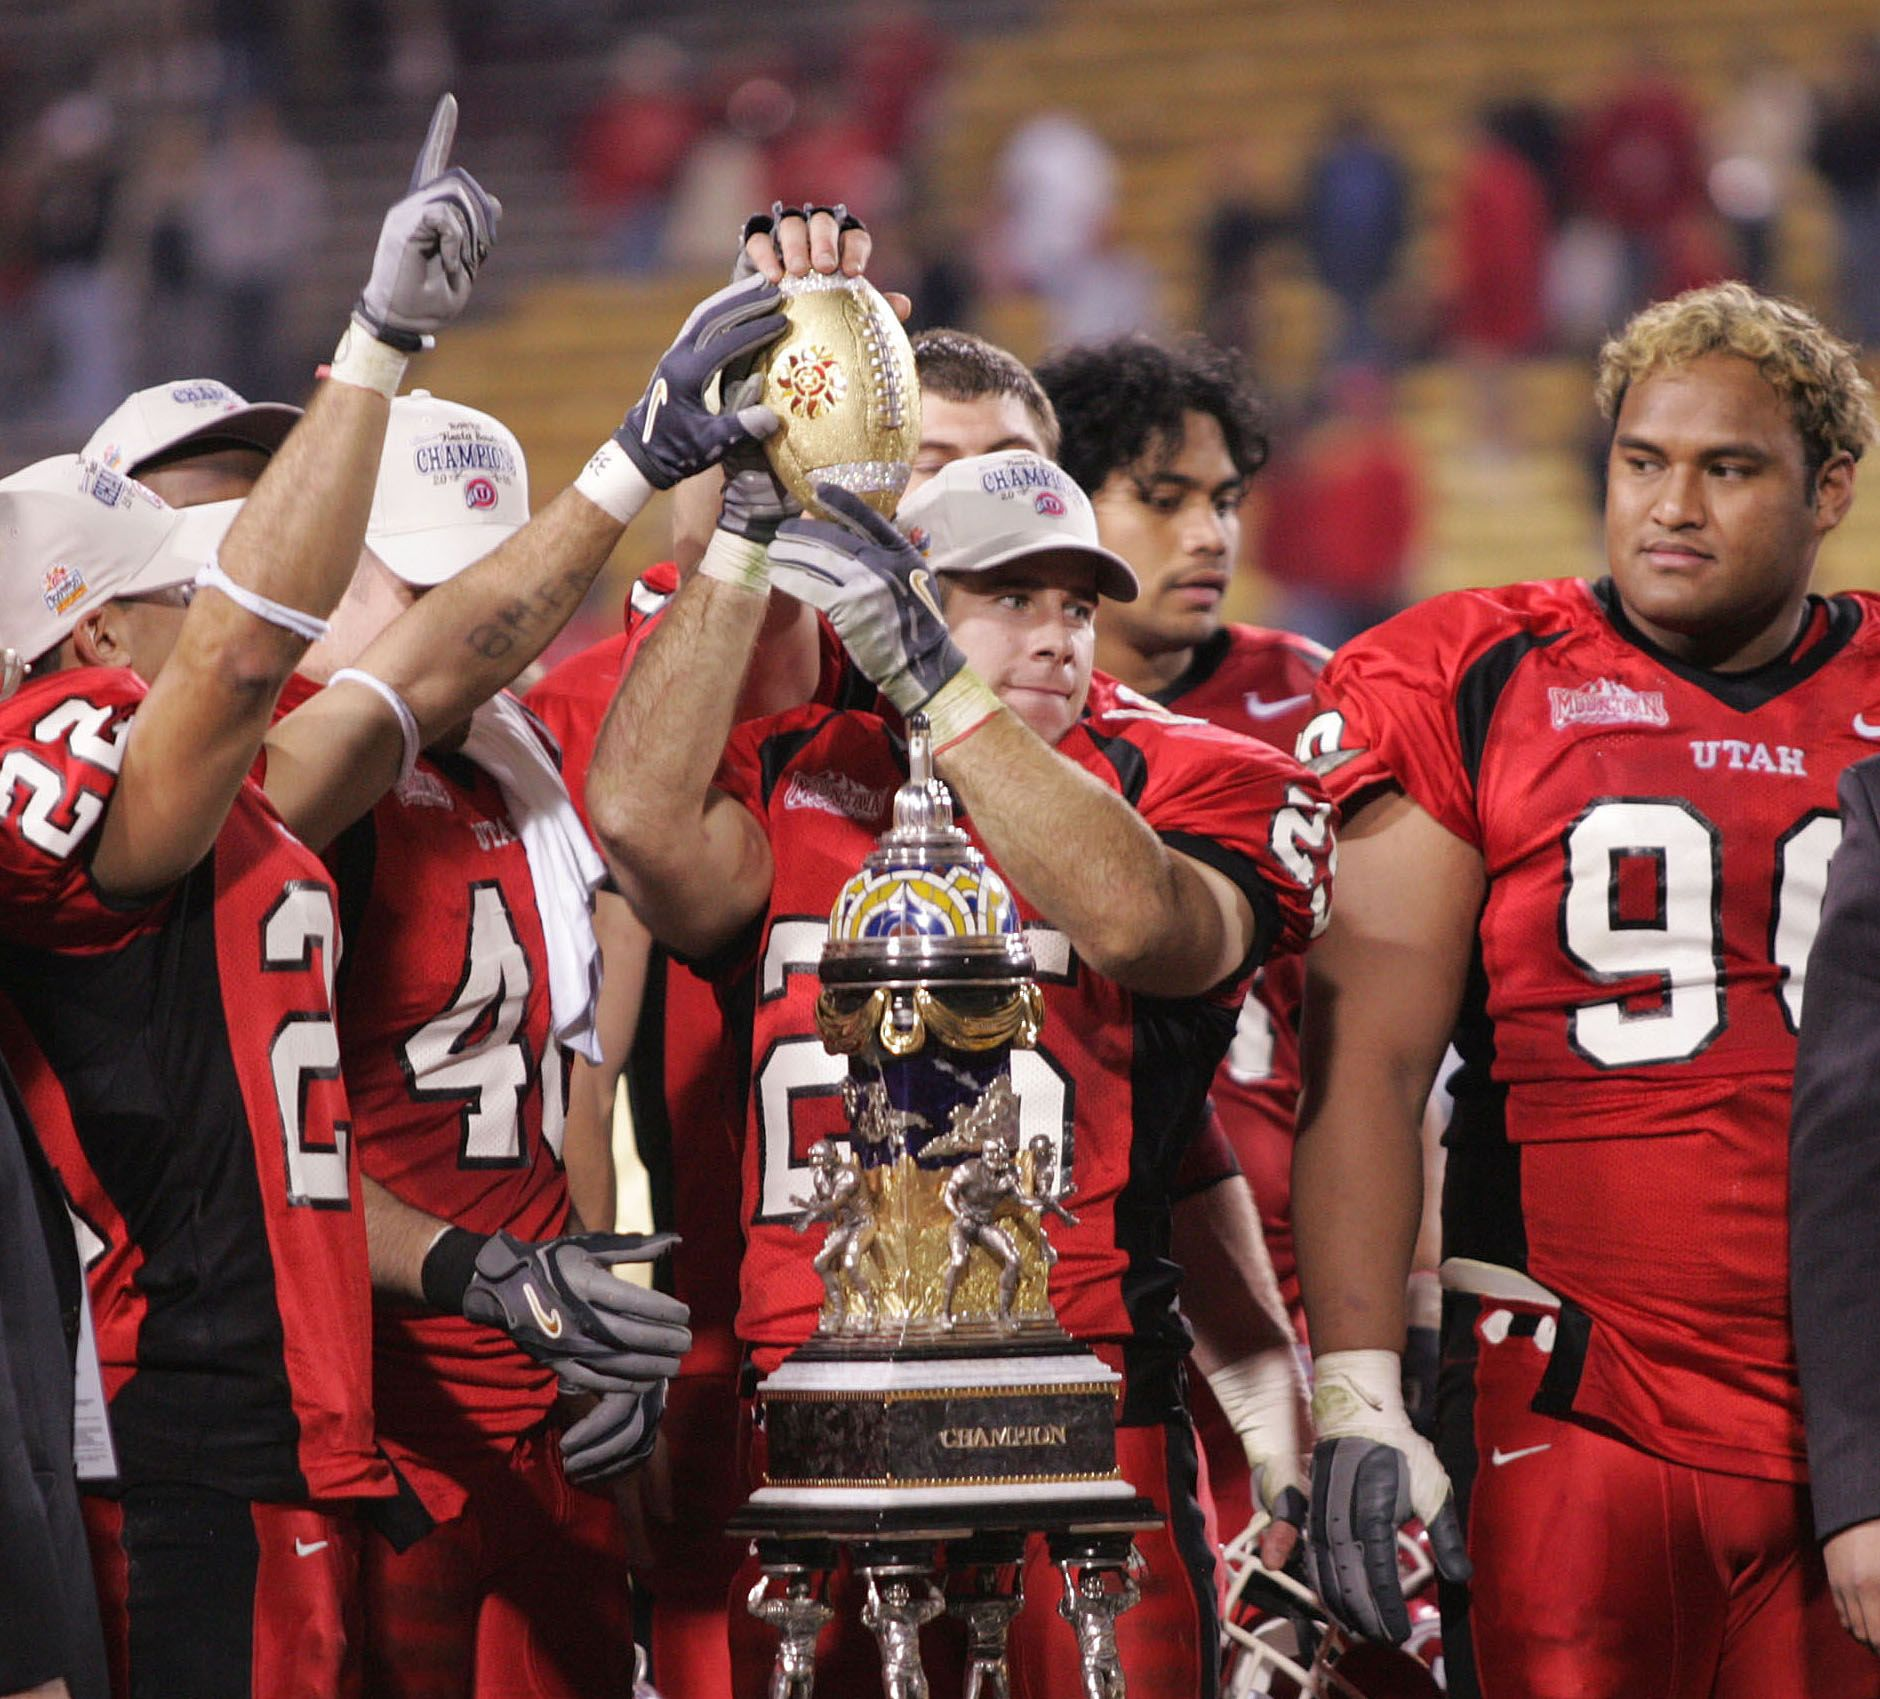 Utah Was The Very First Bcs Buster In 2004 Here Are The Utes Including Current Assistant Coach Morgan Scalley Center Cel Utah Utes Utes Historical Moments